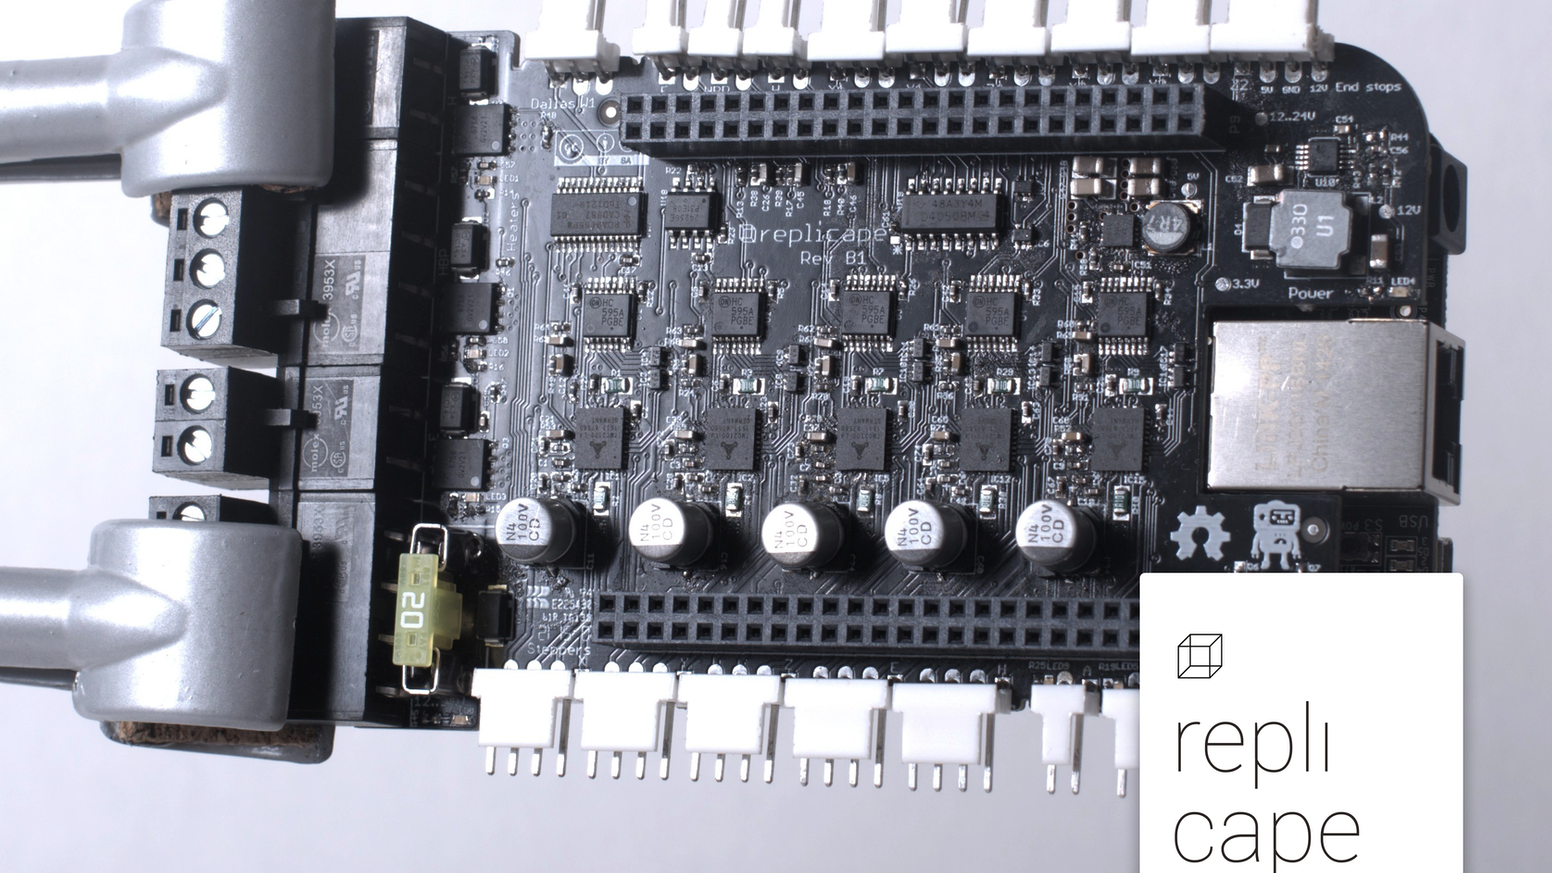 Replicape A Smart And Quiet 3d Printer Control Board By Elias Printed Circuit Good Quality Blank Pcb Boards From Shenzhen Buy Is Silent User Friendly Controller For Your